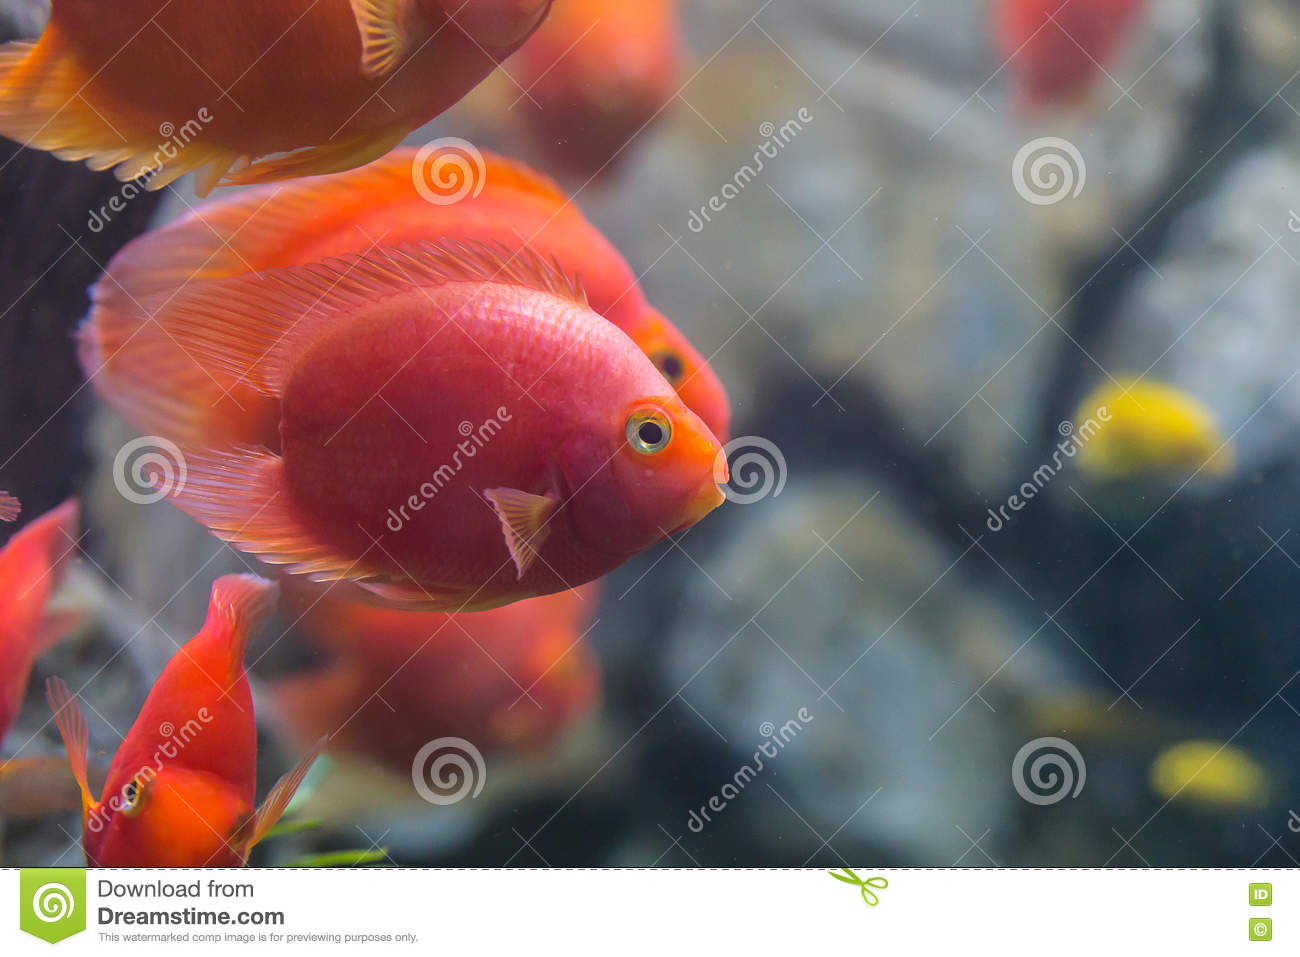 Love Heart Blood Parrot Cichild Fish Stock Image - Image of curious ...